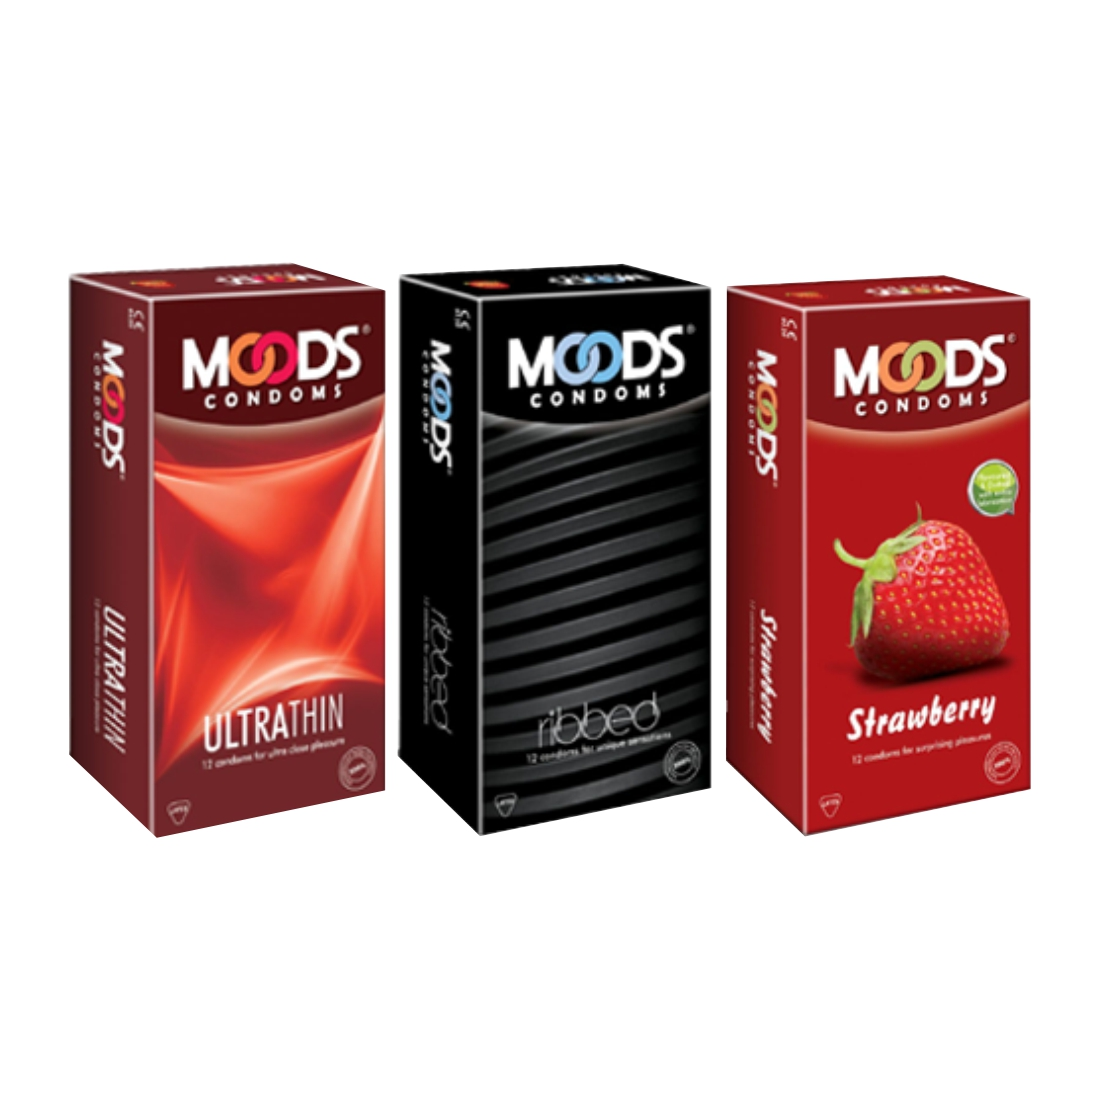 Moods 12S Ultrathin Ribbed And Strawbery Pack Of 3 Condom